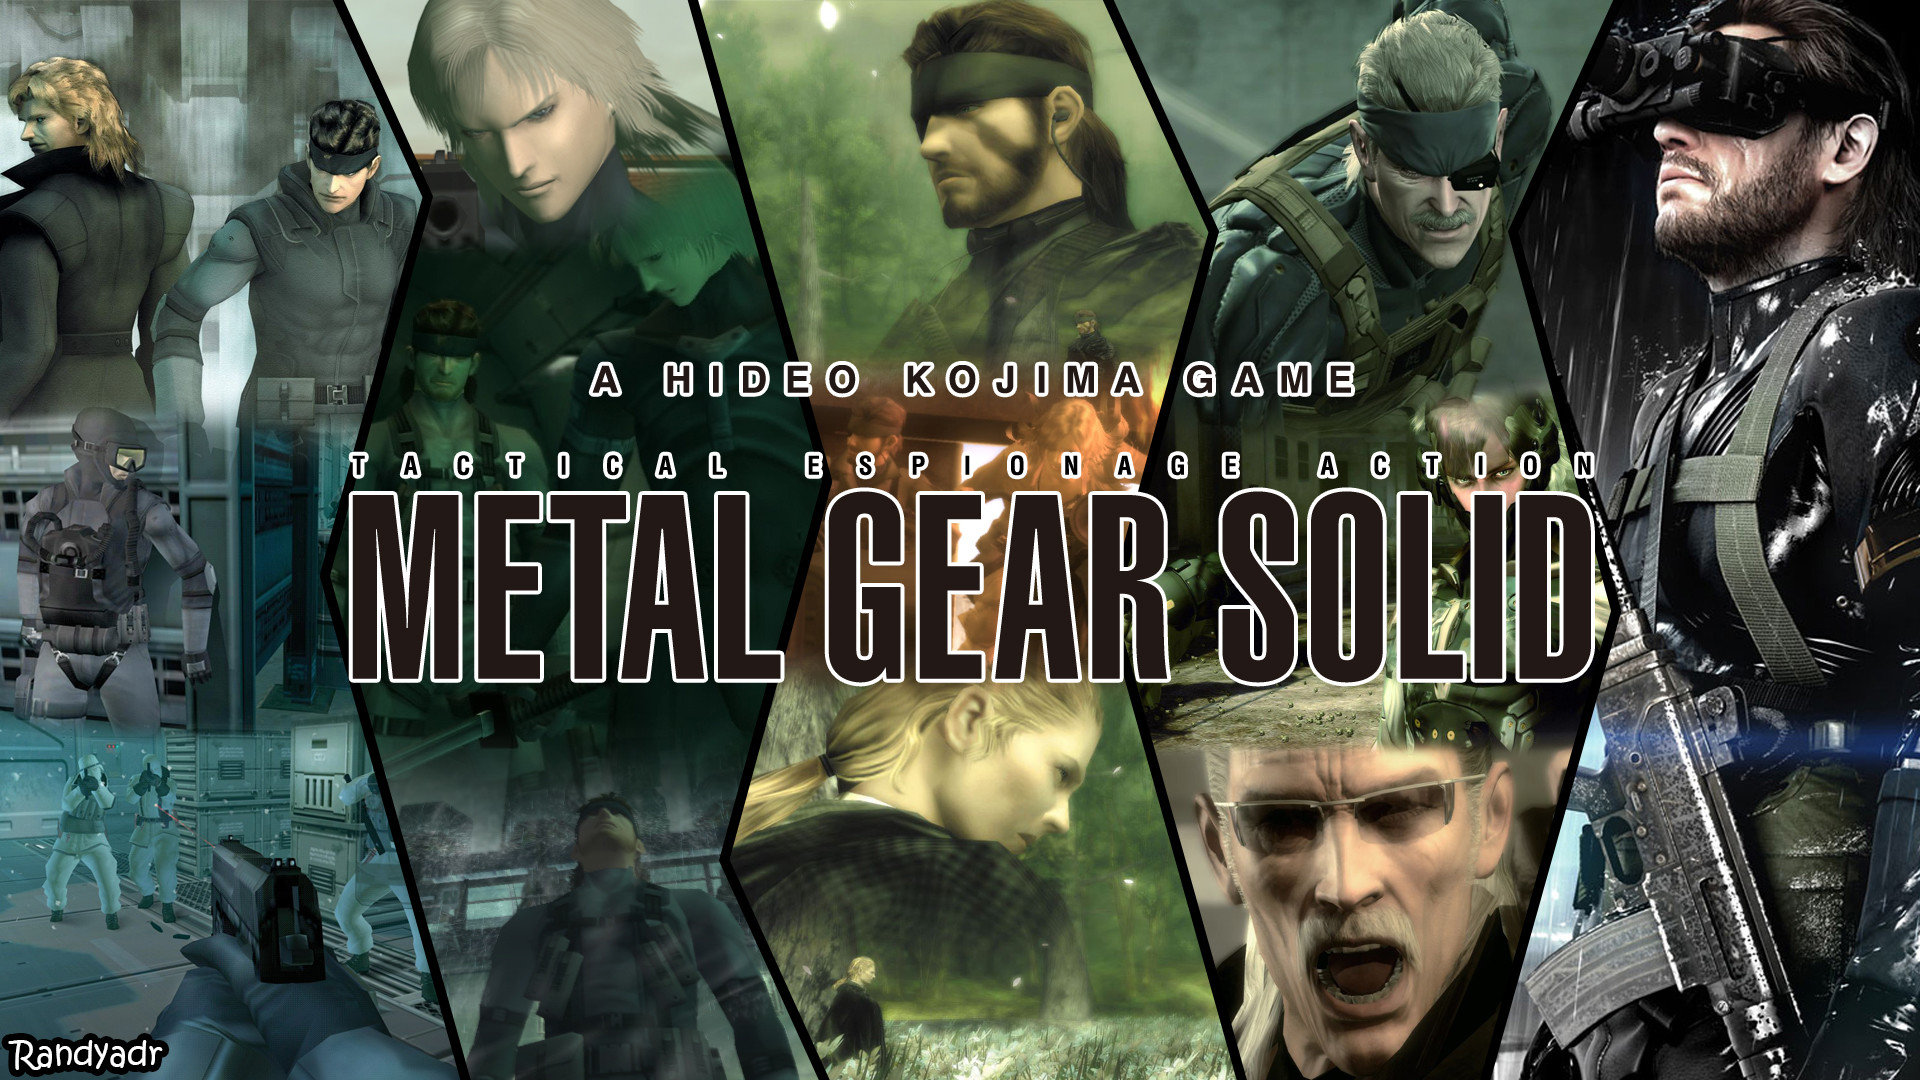 1920x1080 ... Metal Gear Solid Wallpaper Attempt by randyadr